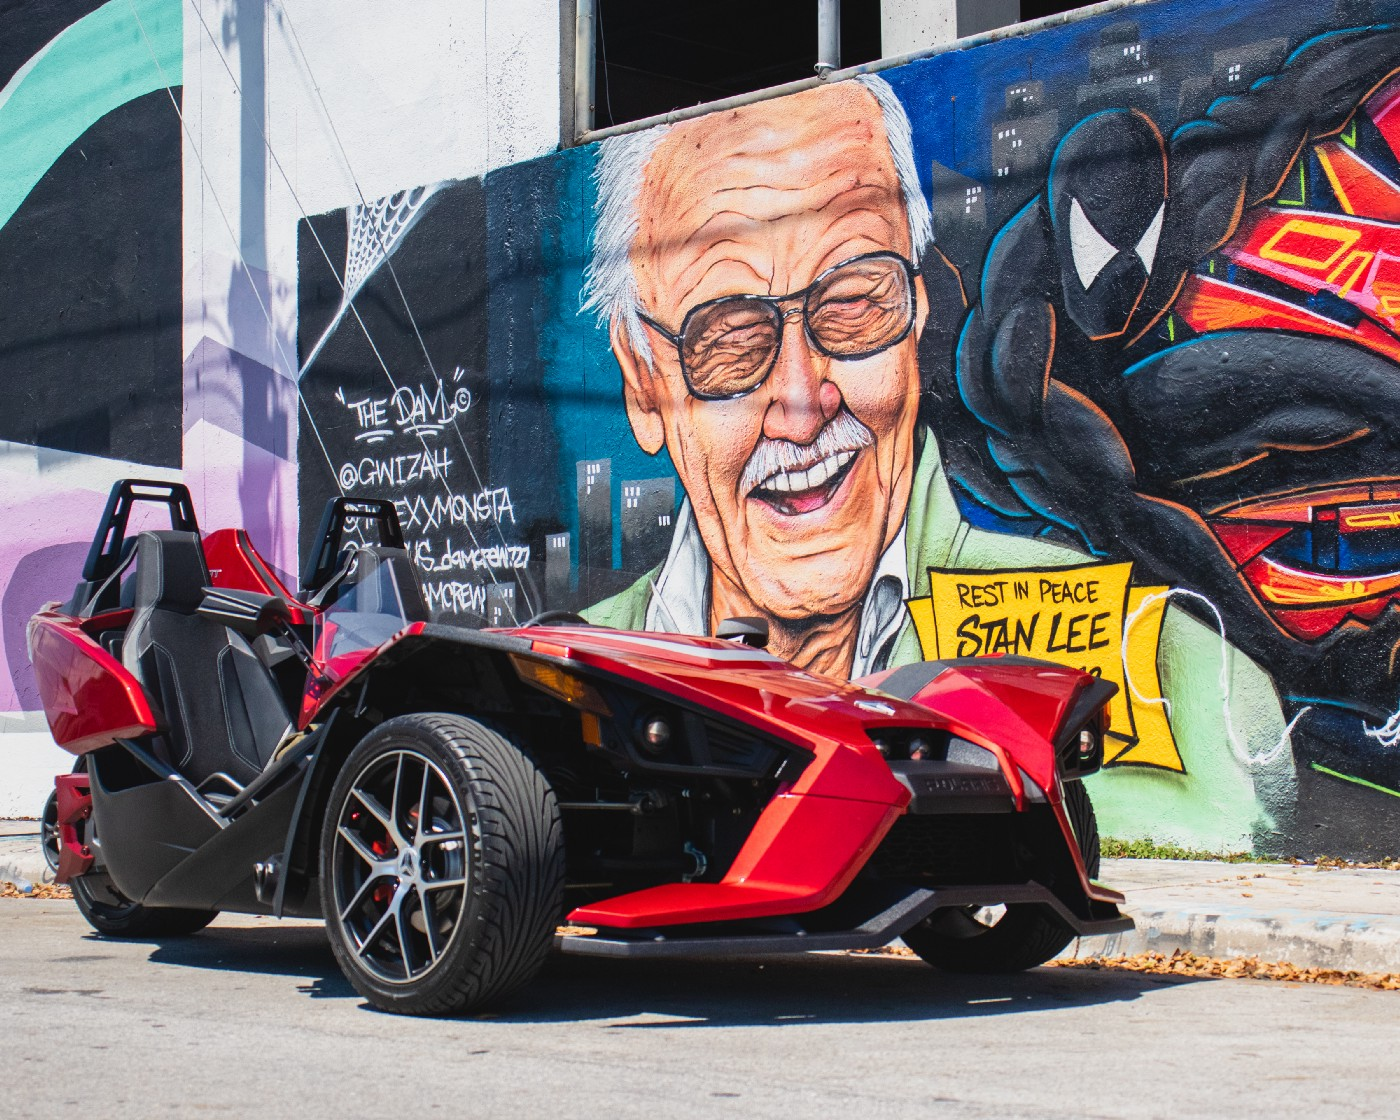 A mural featuring Stan Lee and Spider-Man dressed a black suit. Stan Lee is credited for Modern Marvel success